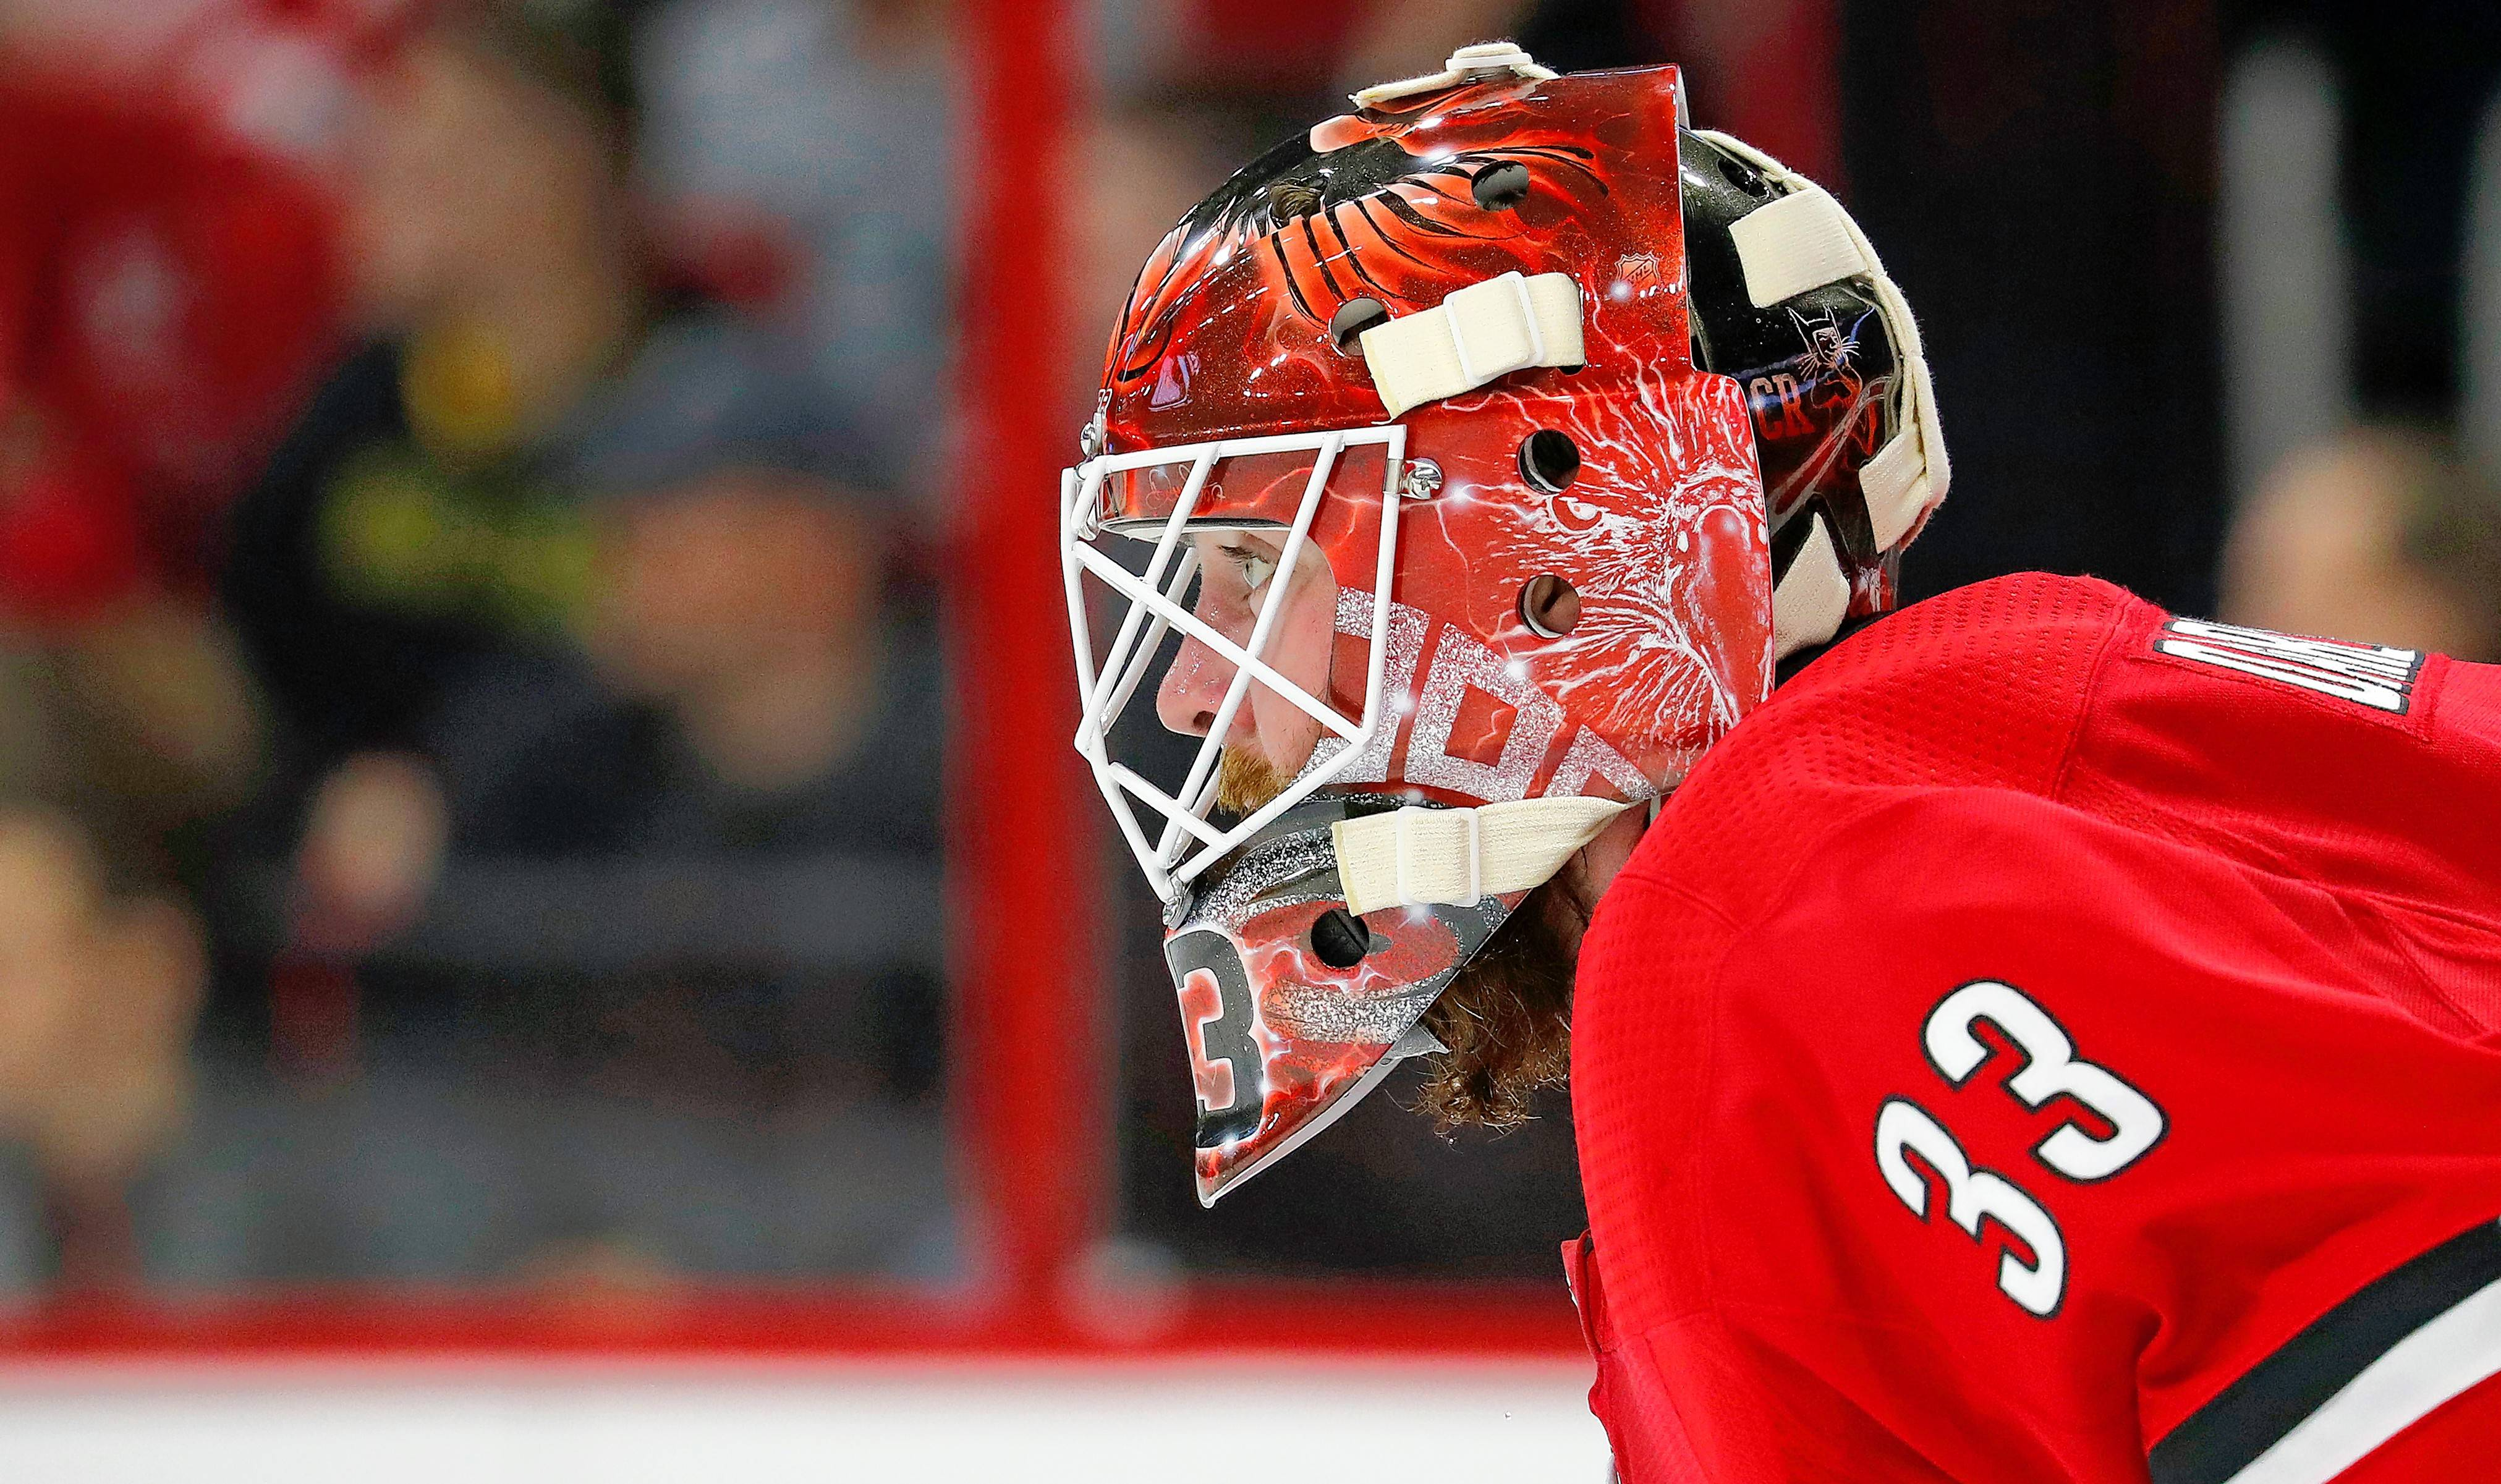 Carolina Hurricanes goaltender Scott Darling (33) eyes the puck against the Detroit Red Wings during the first period of an NHL hockey game, Friday, Feb. 2, 2018, in Raleigh, N.C.